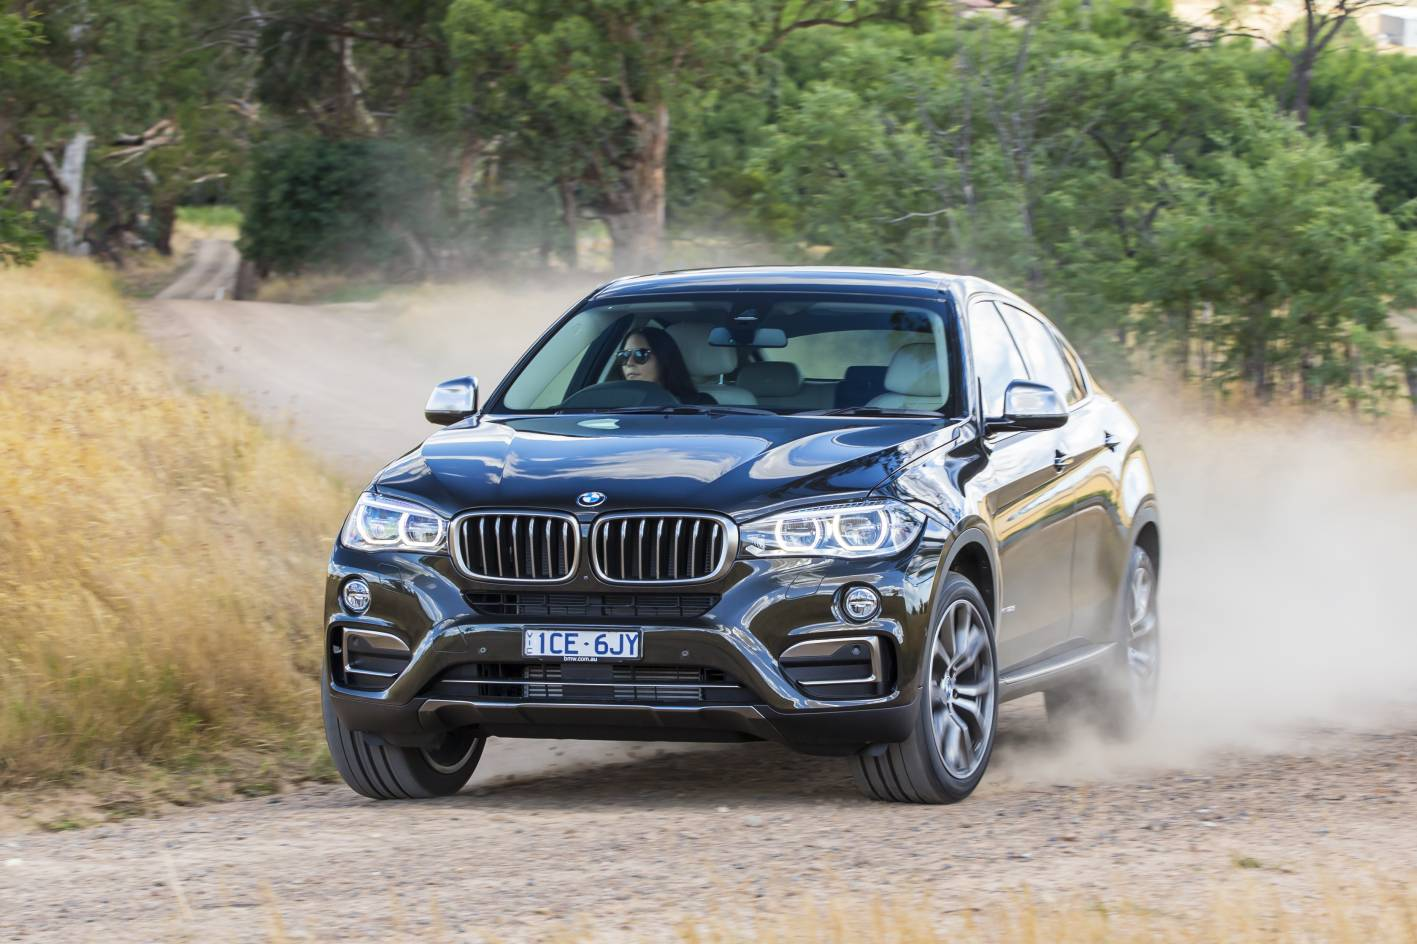 Comparison Bmw X6 Xdrive50i 2015 Vs Land Rover Range